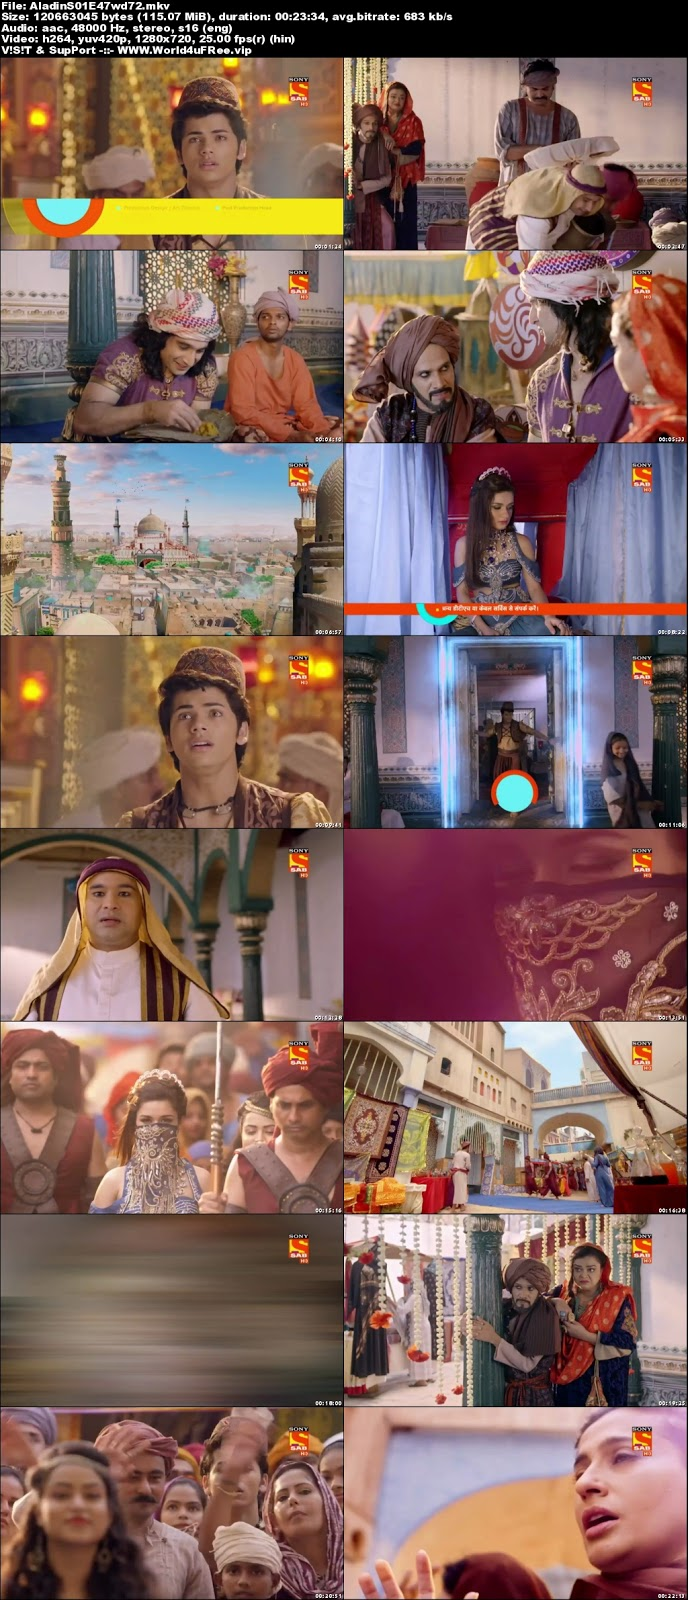 Aladdin 2018 Hindi Season 01 Episode 47 720p HDTV 150Mb x264 world4ufree.fun tv show Aladdin 2018 hindi tv show Aladdin 2018 Season 11 Sony tv show compressed small size free download or watch online at world4ufree.fun